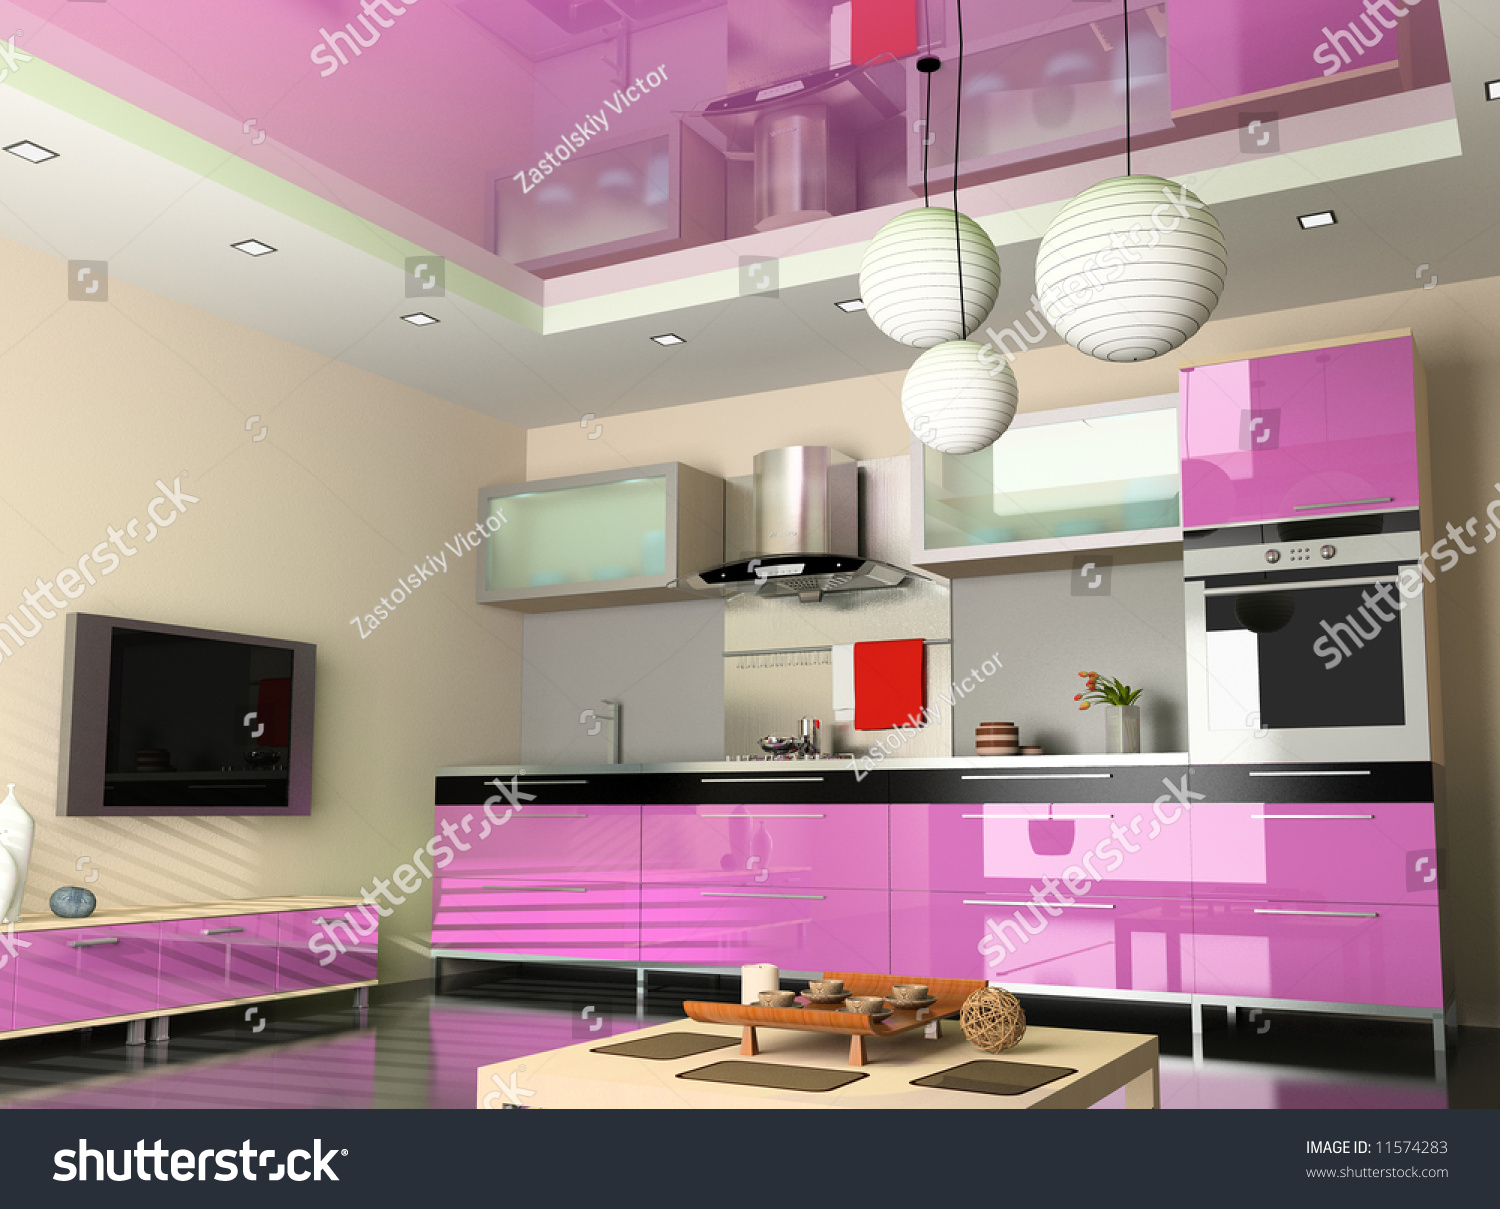 The Modern Kitchen Interior Design 3d Rendering